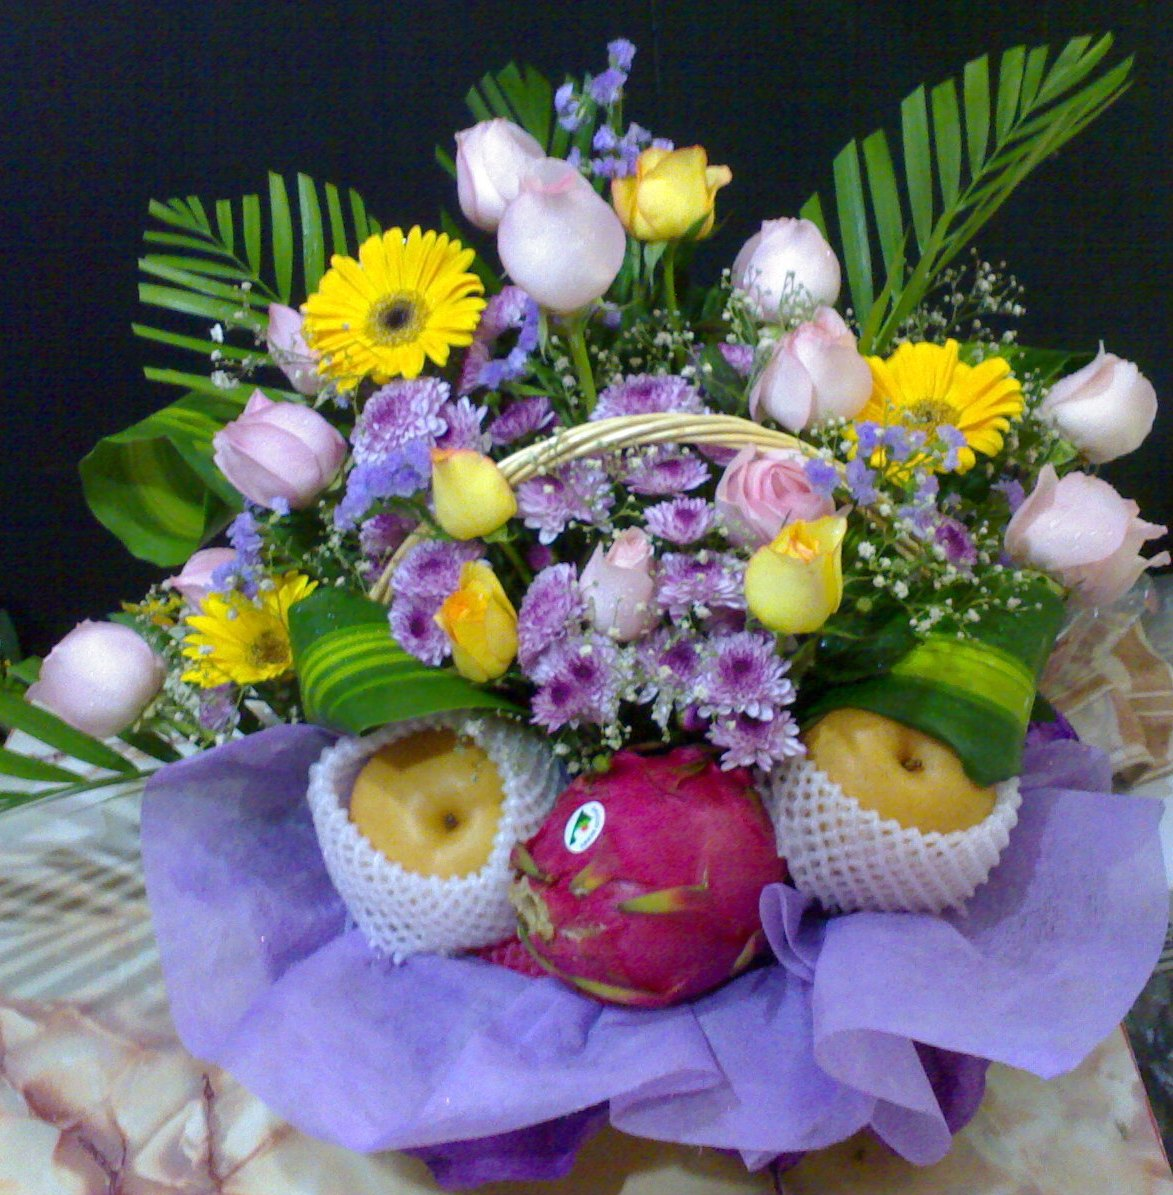 E Flower Gift Fruit Flower Basket